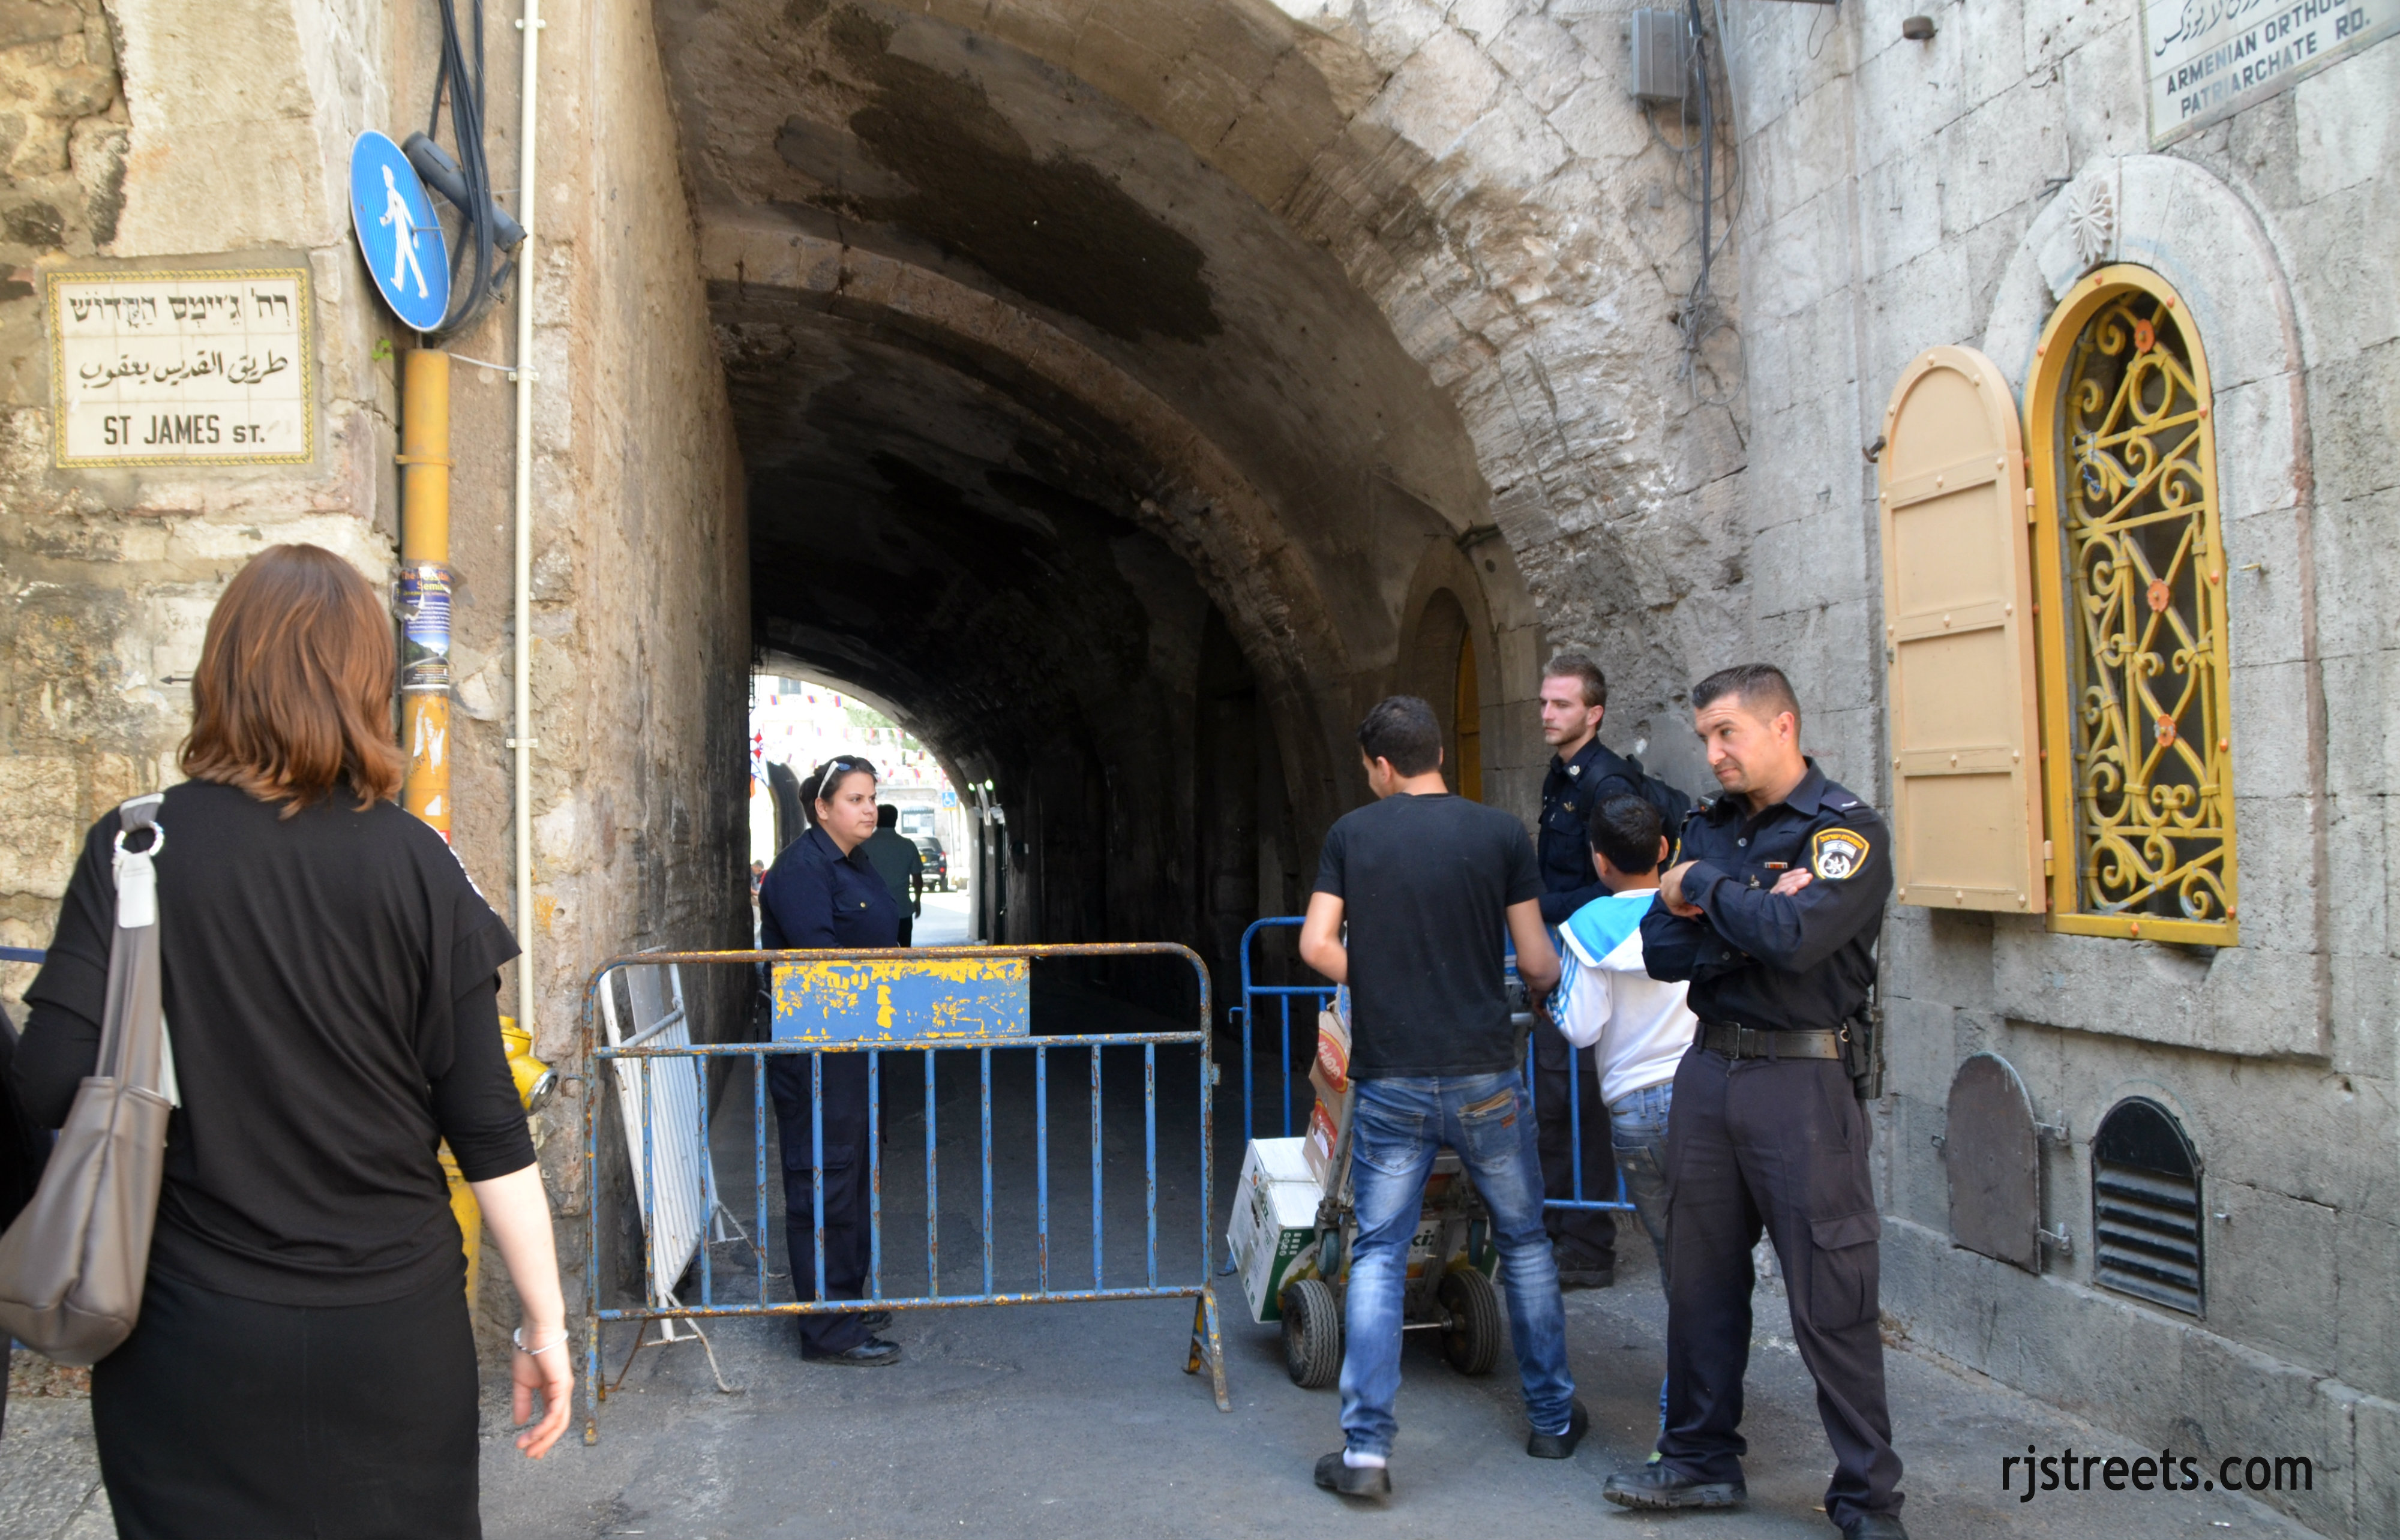 image Arab boys Old City, photo Israeli apartheid, picture streets closed Jerusalem